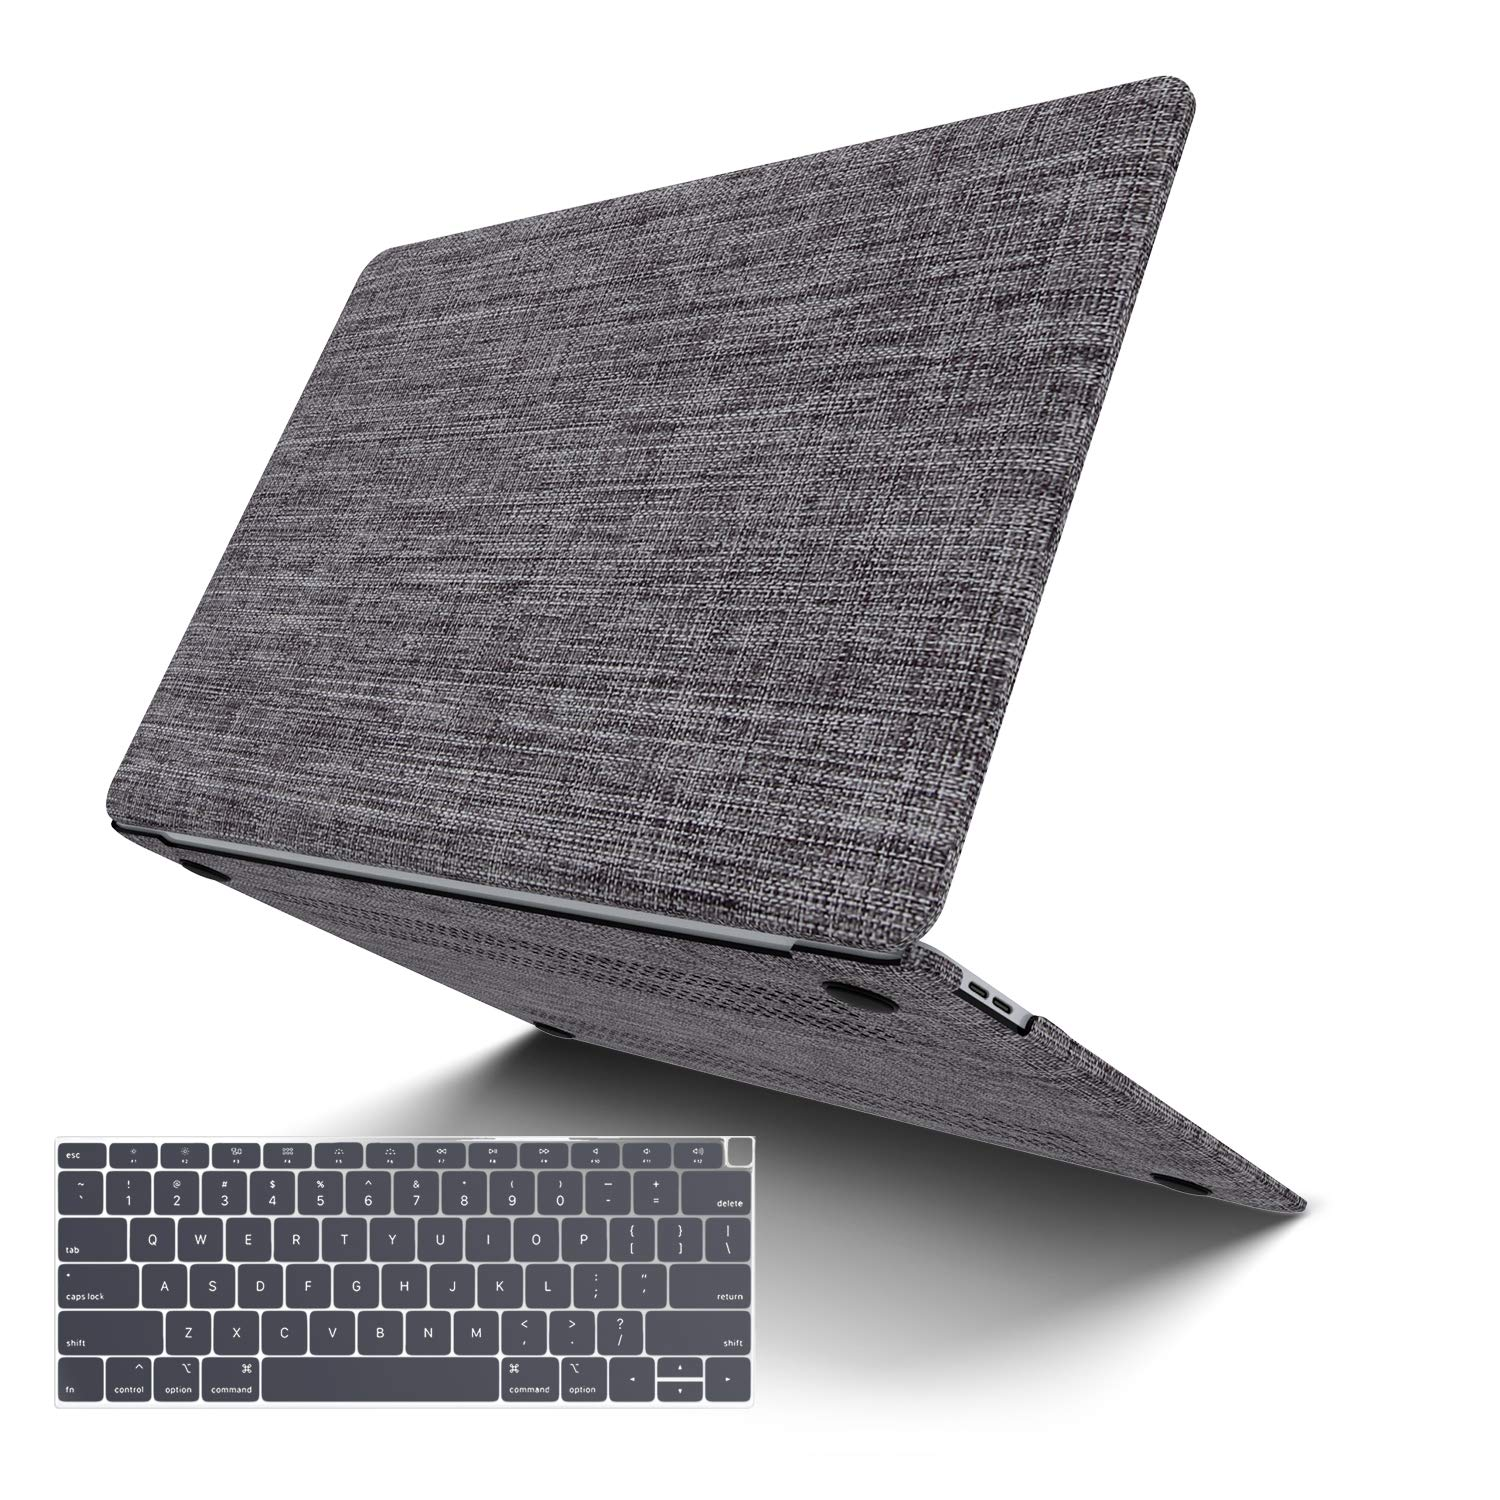 MacBook Pro 13 Case 2019 2018 2017 2016 Release A2159/A1989/A1706/A1708, JGOO Soft Touch Shell Cover(Fabric), Hard Shell Case Compatible Newest Mac Pro 13 with/Without Touch Bar, Grey by G JGOO